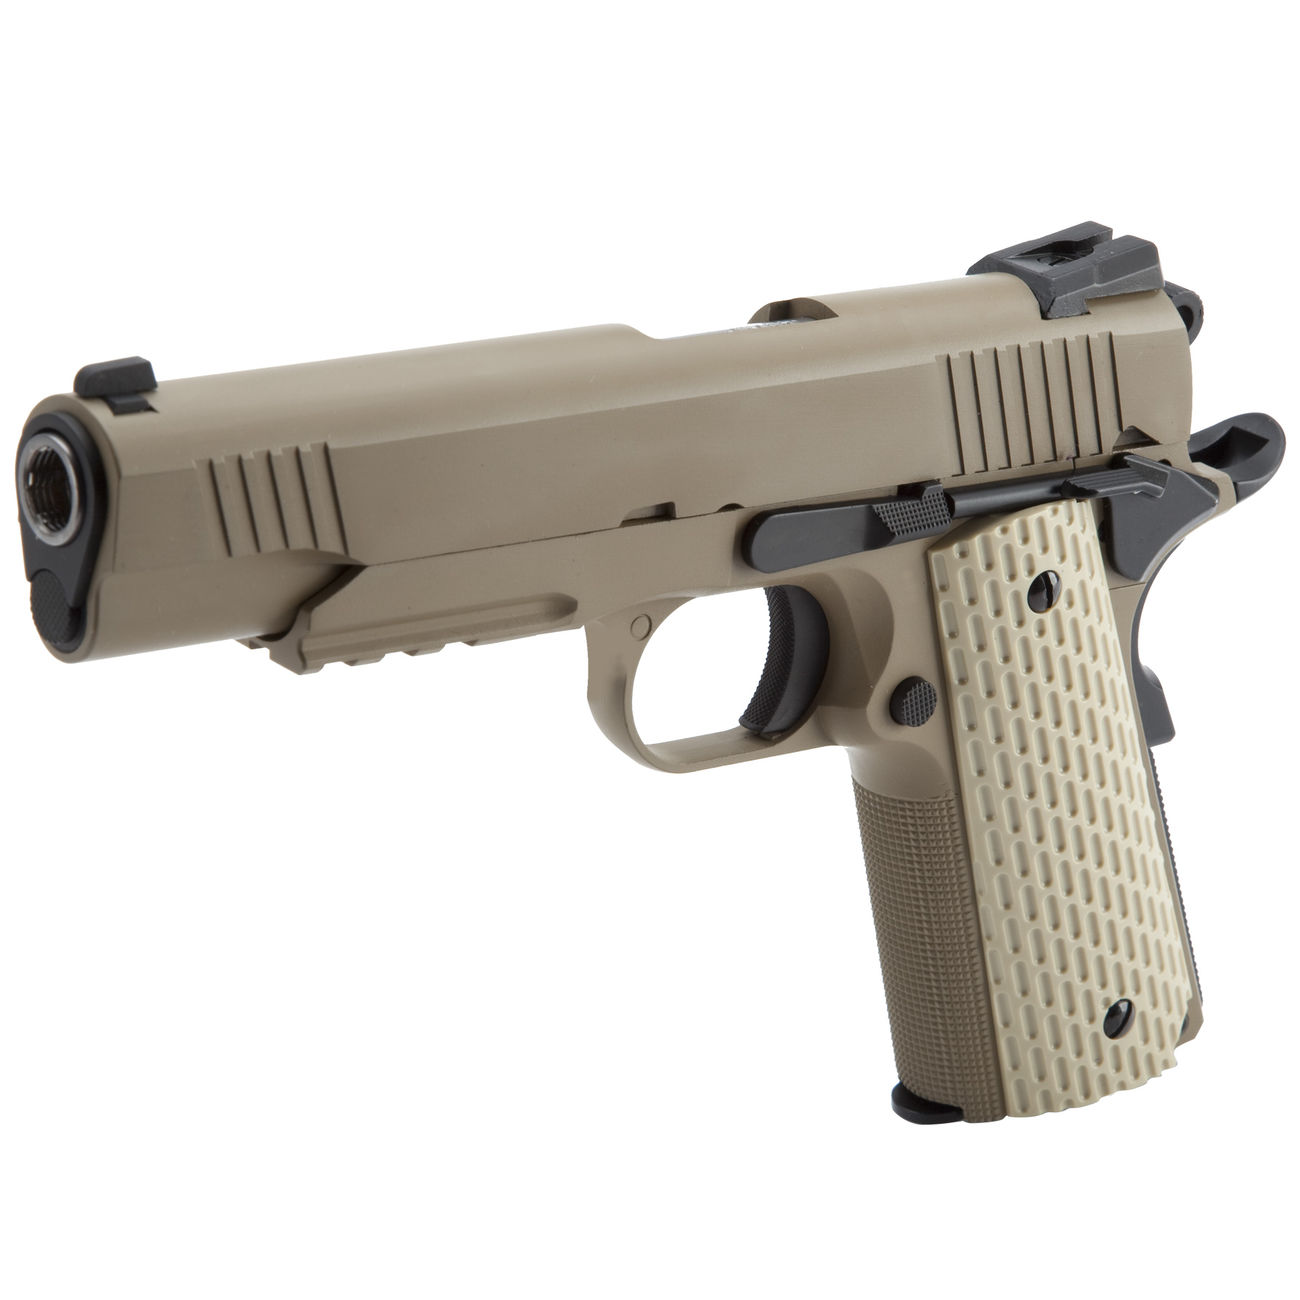 Wei-ETech Kbr-Style Warrior .45 ACP Vollmetall GBB 6mm BB Desert Tan 0